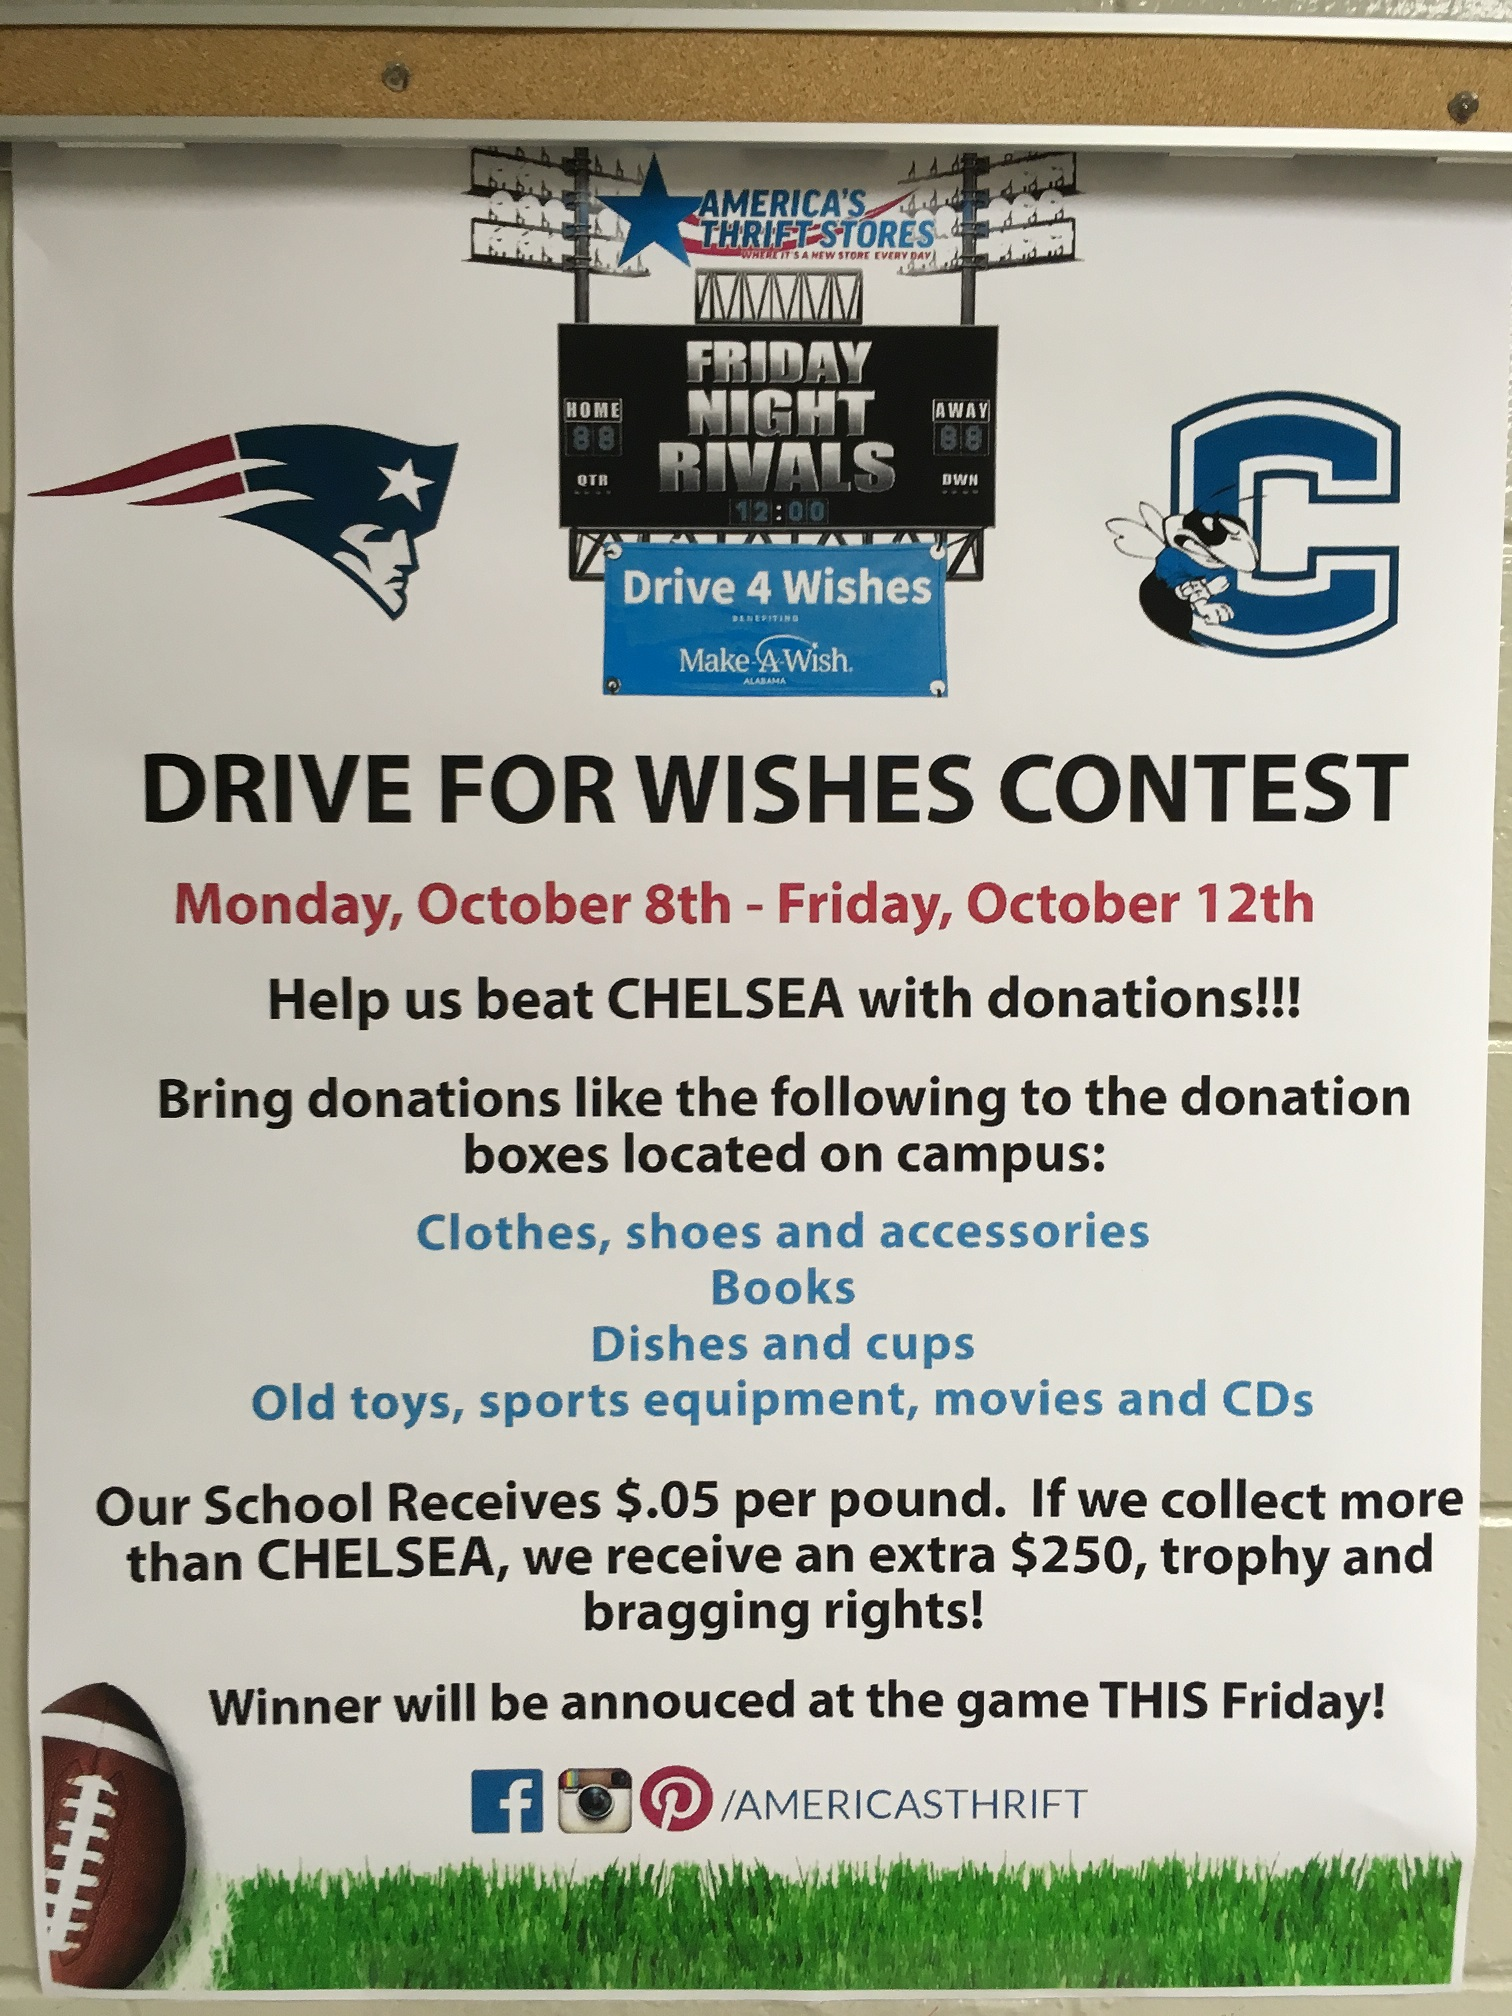 Attention all Patriot Fans:  The Drive for Wishes contest needs you!